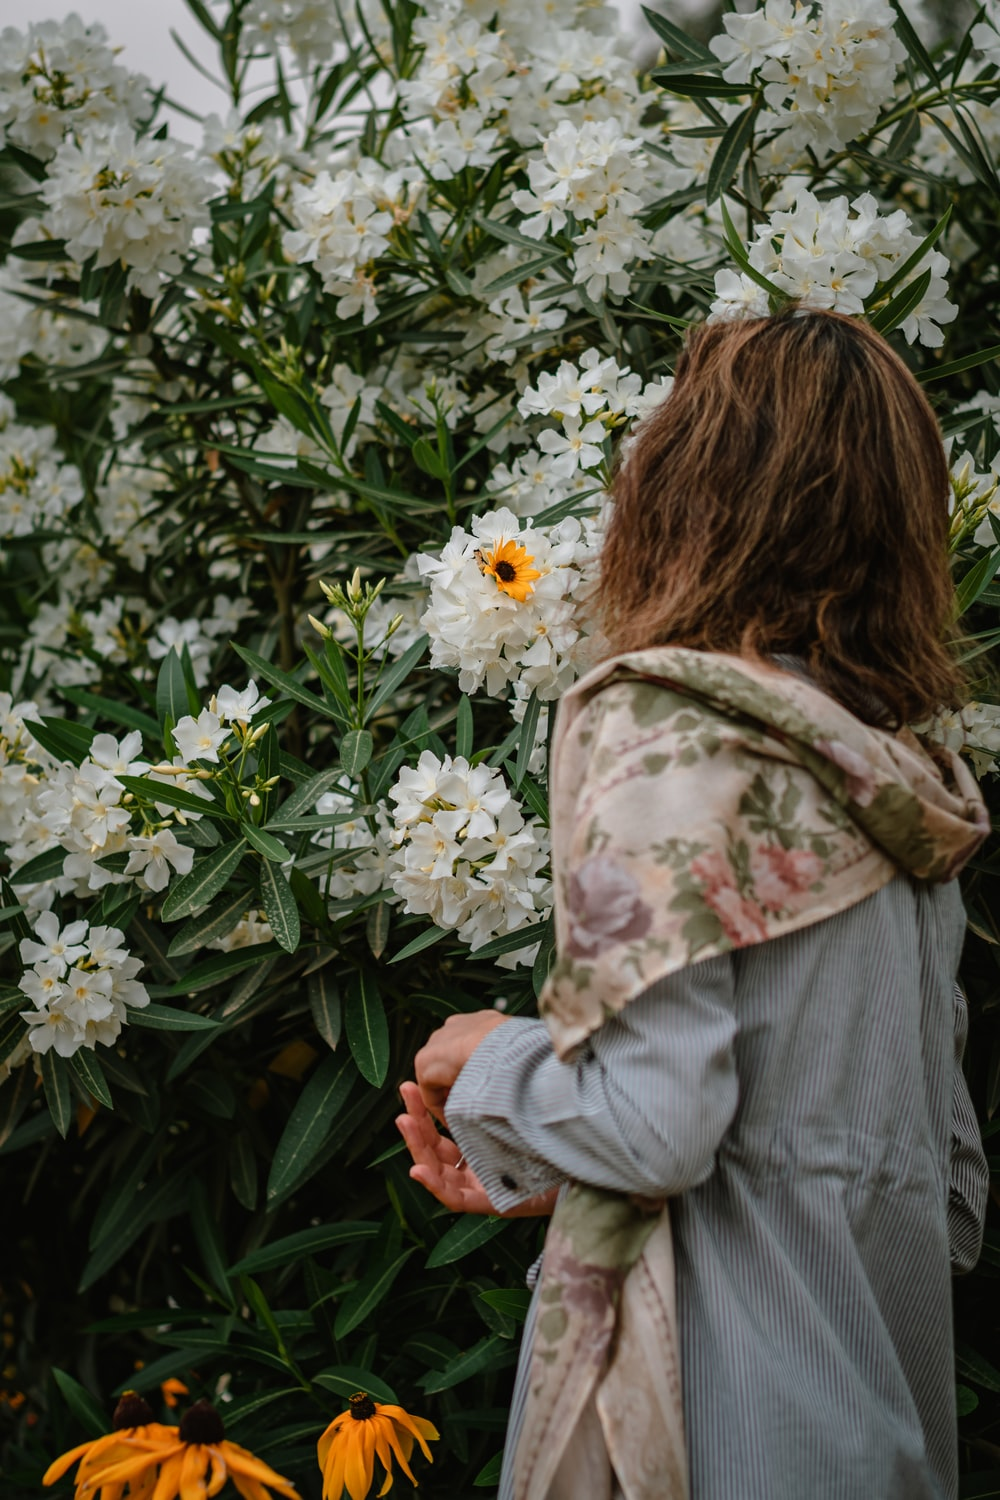 woman in gray jacket holding white flowers